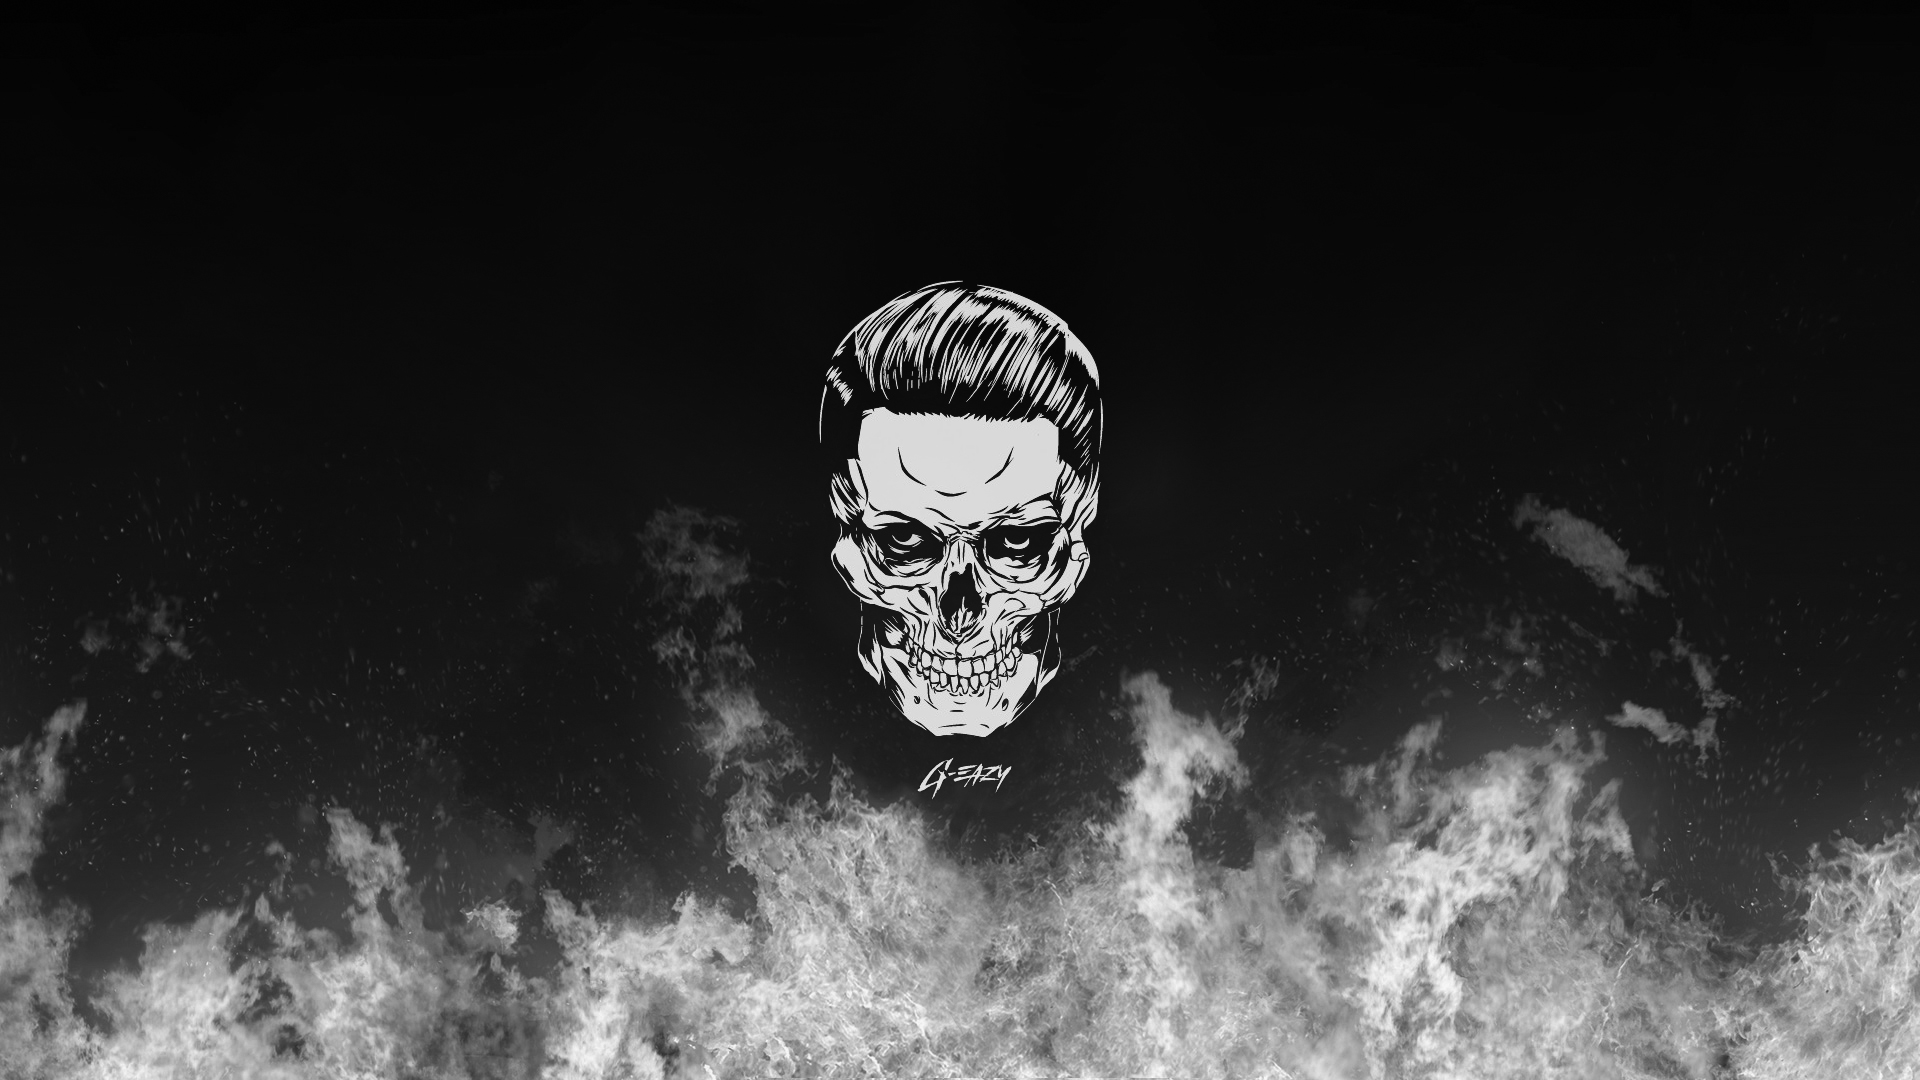 G Eazy Hd Wallpapers